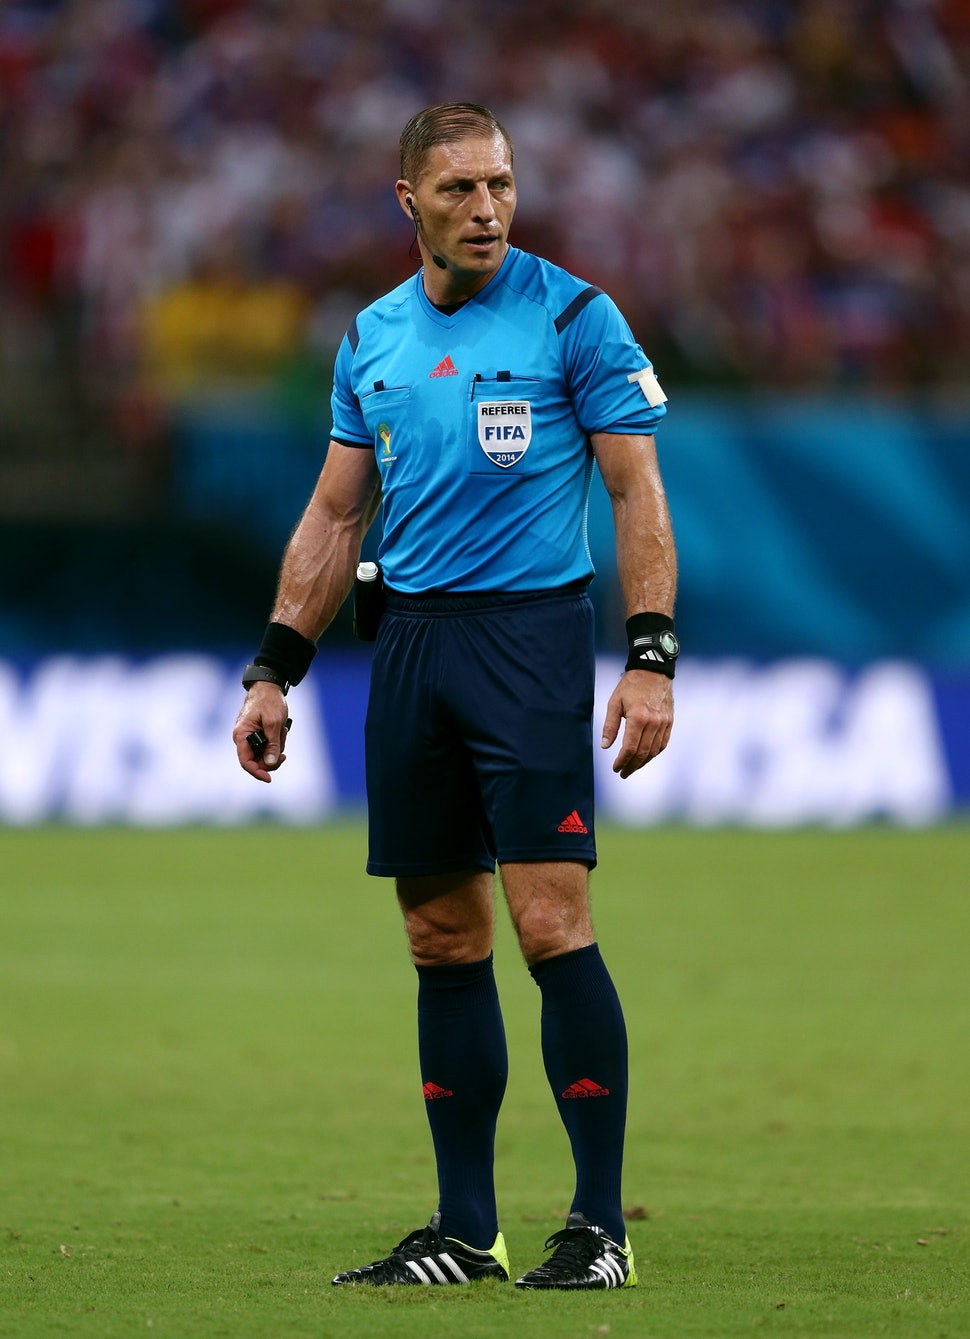 The Ed Hochuli Of Fifa Is Nestor Pitana A Guy With Muscles The Size Of Brazil